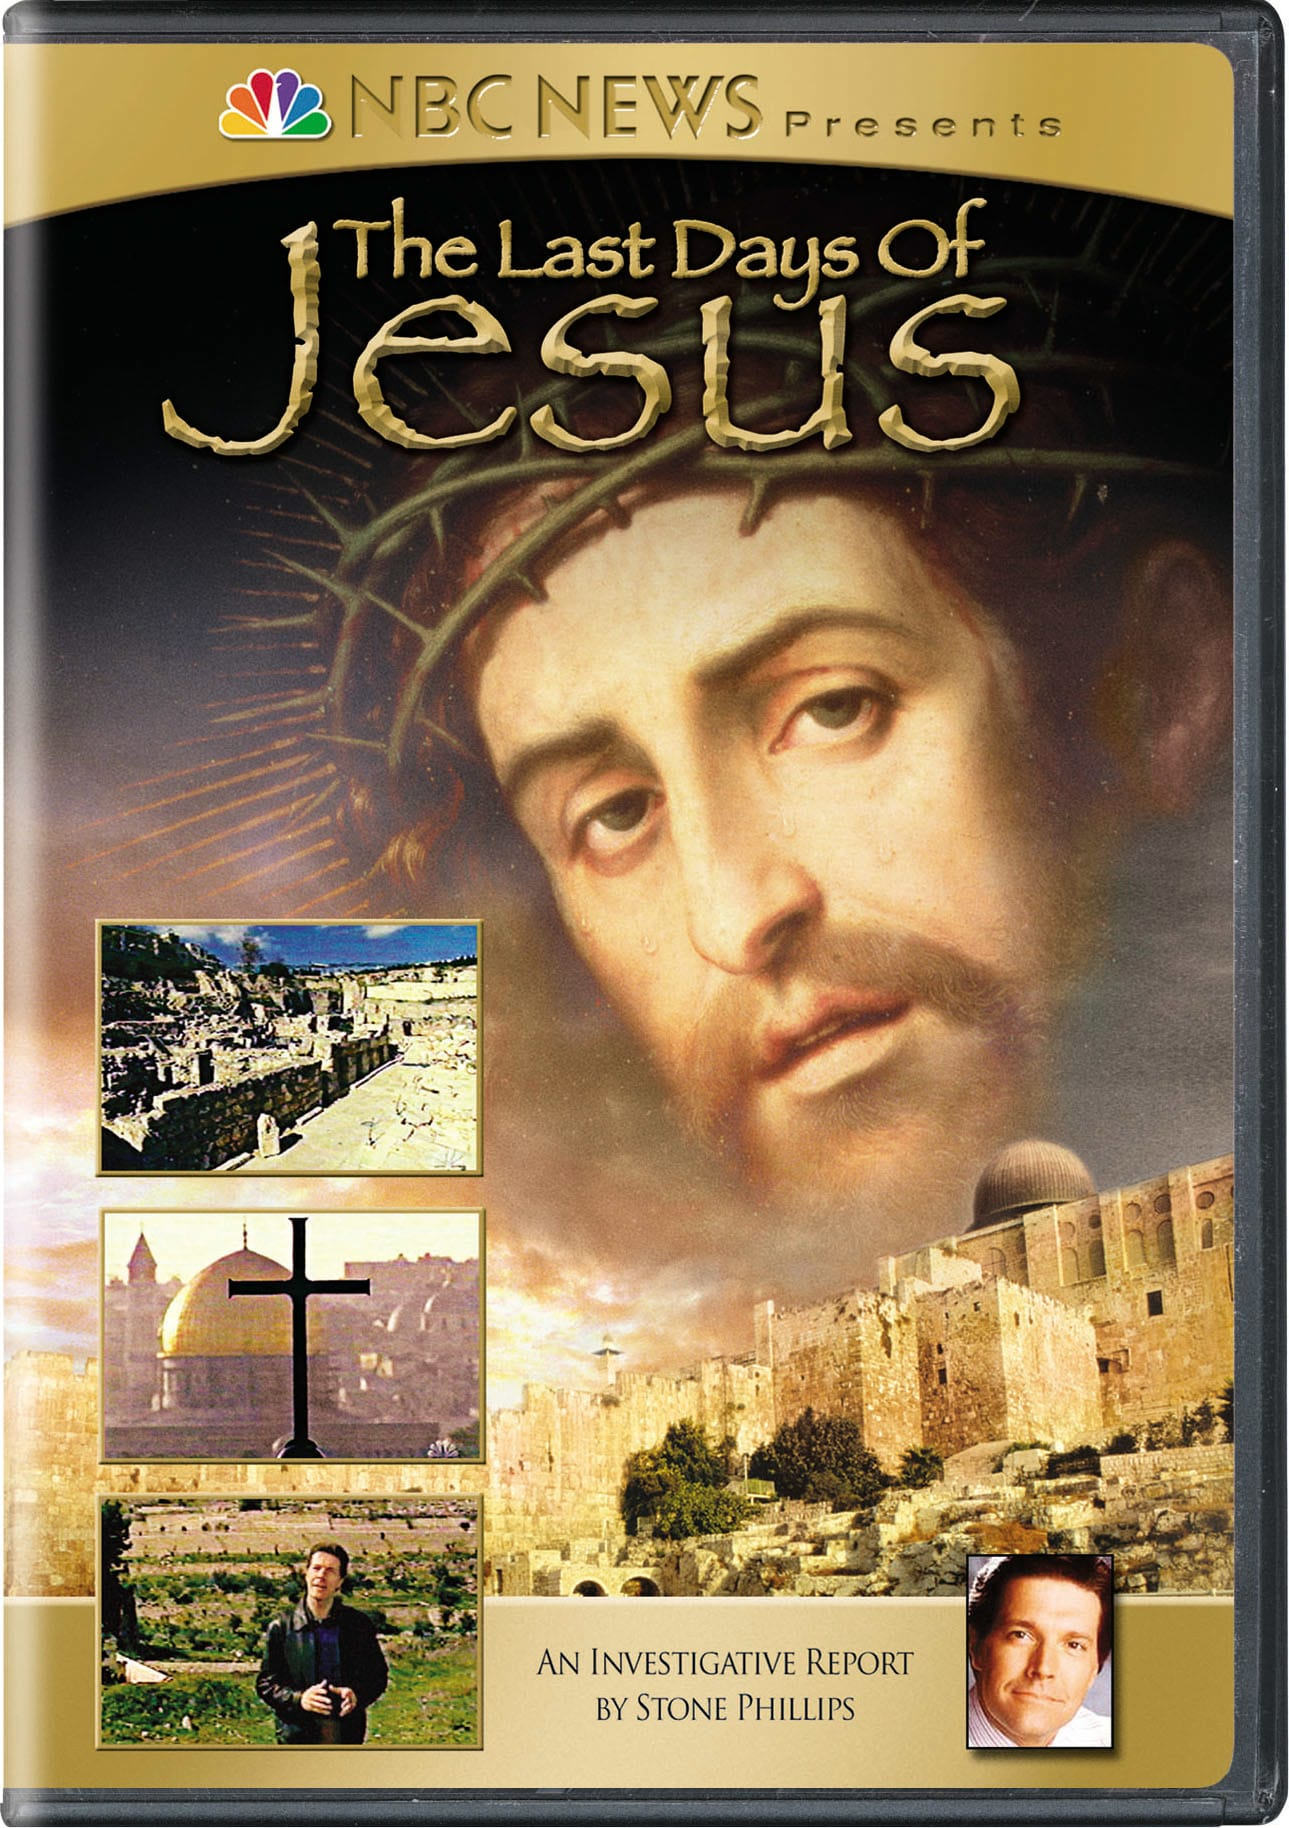 NBC News Presents: The Last Days of Jesus [DVD]